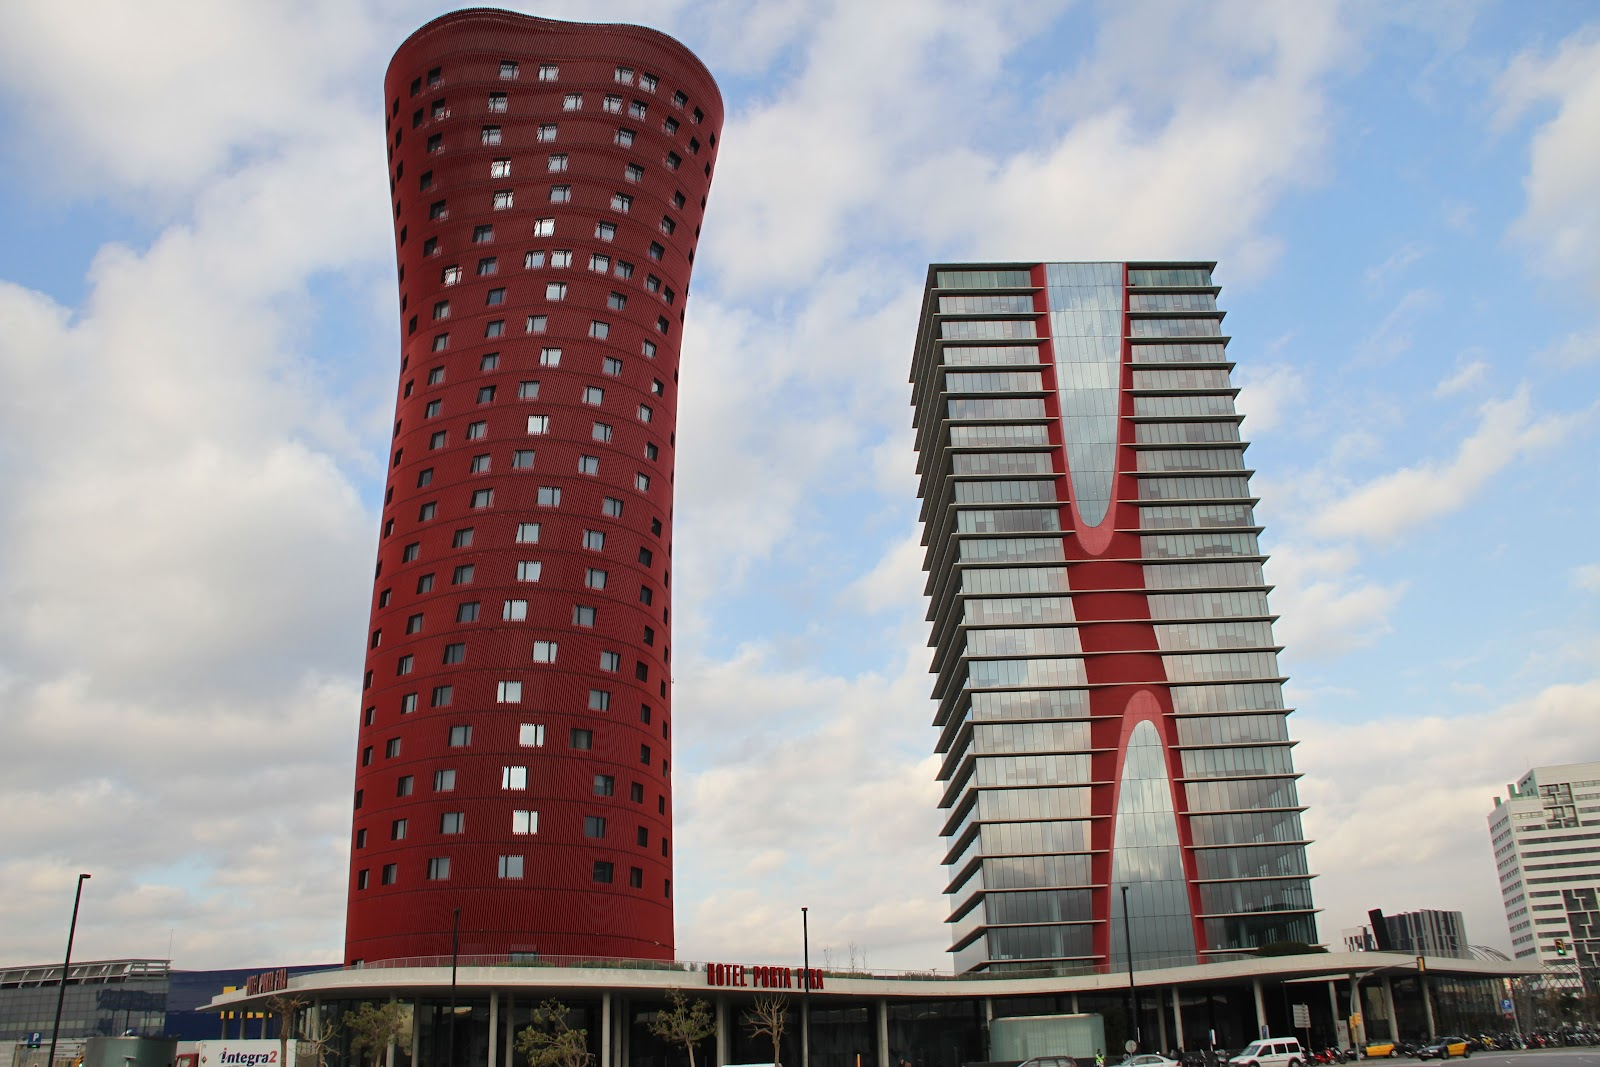 hotel barcelone toyo ito Le laurat du prix Pritzker 2013 est larchitecte japonais Toyo Ito